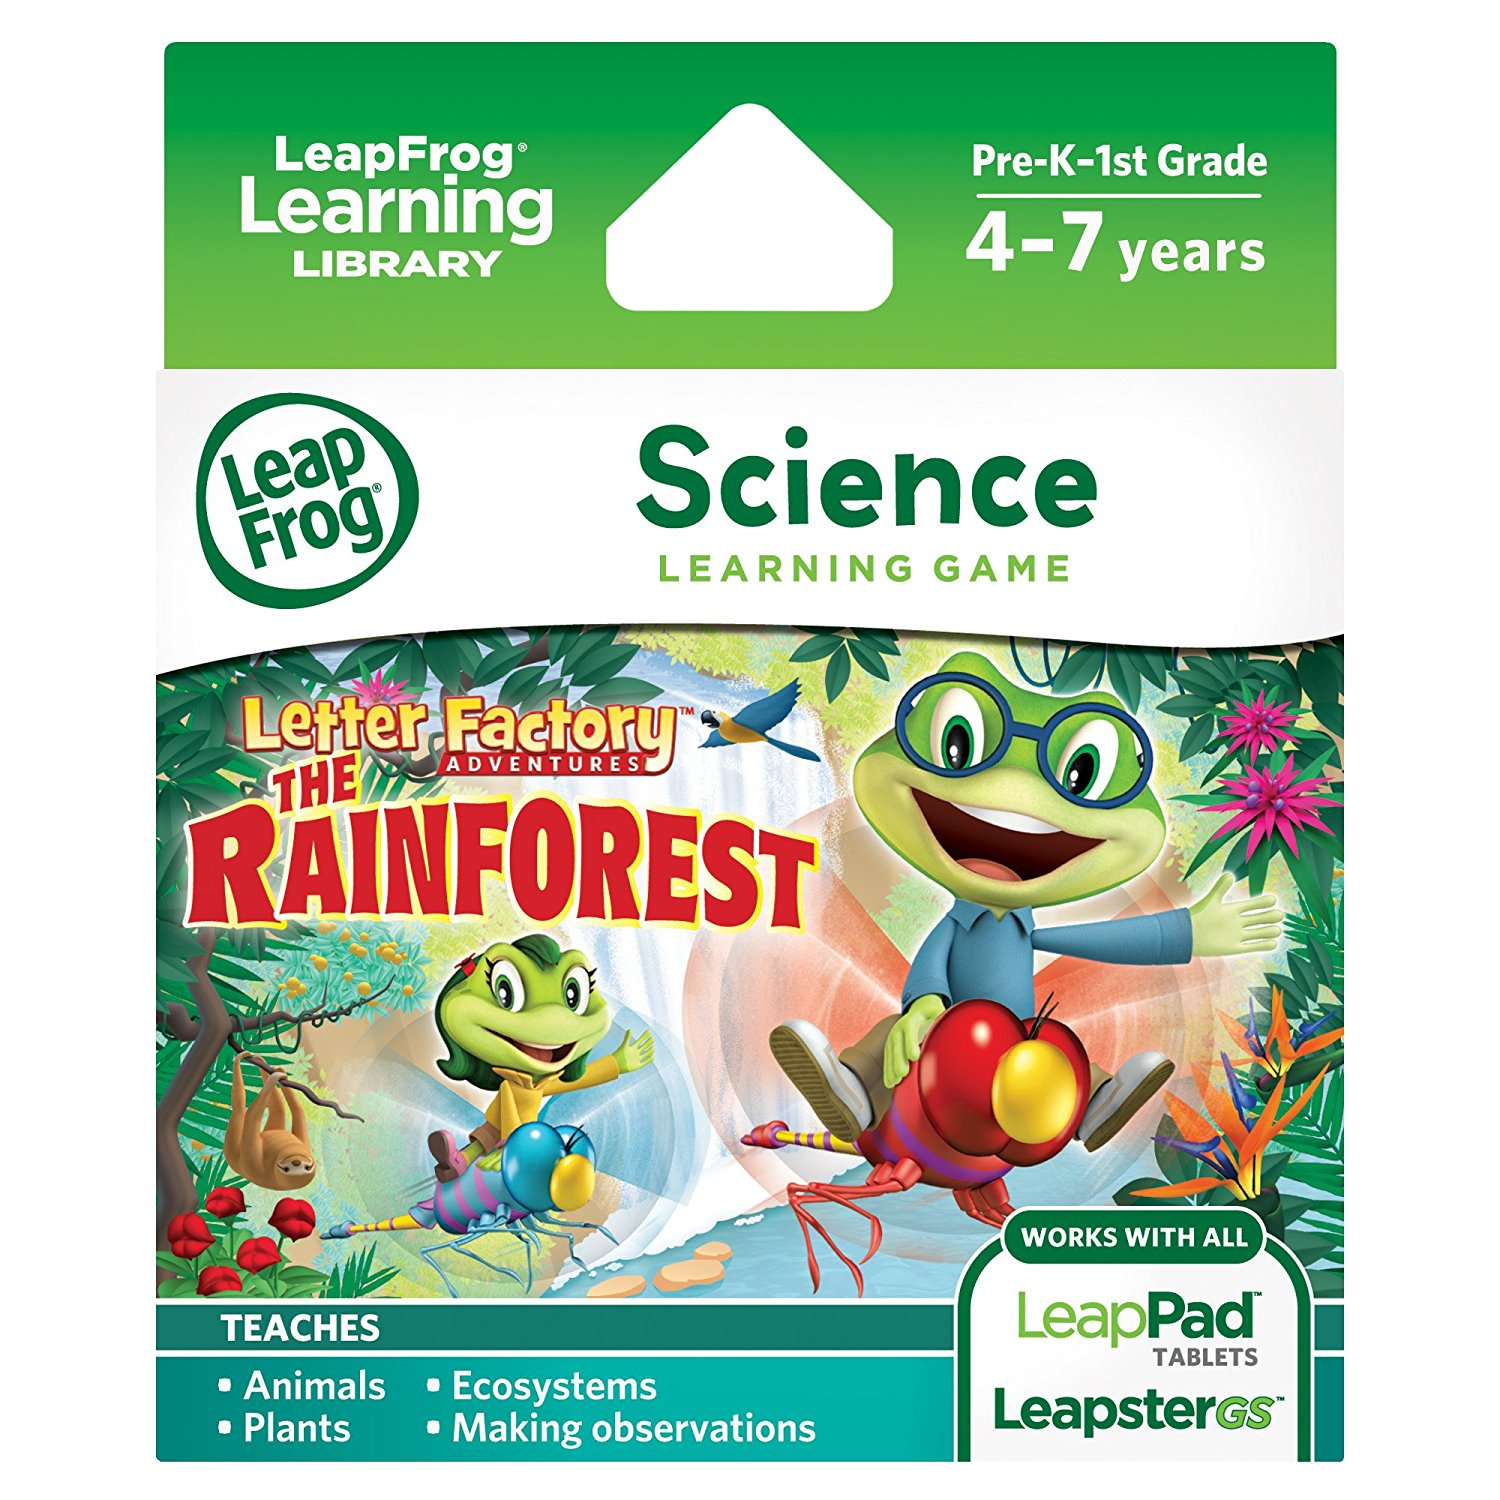 Learning Game Letter Factory Adventures: The Rainforest (for LeapPad tablets and LeapsterGS)Teaches animals, ecosystems, plants and making observations By LeapFrog